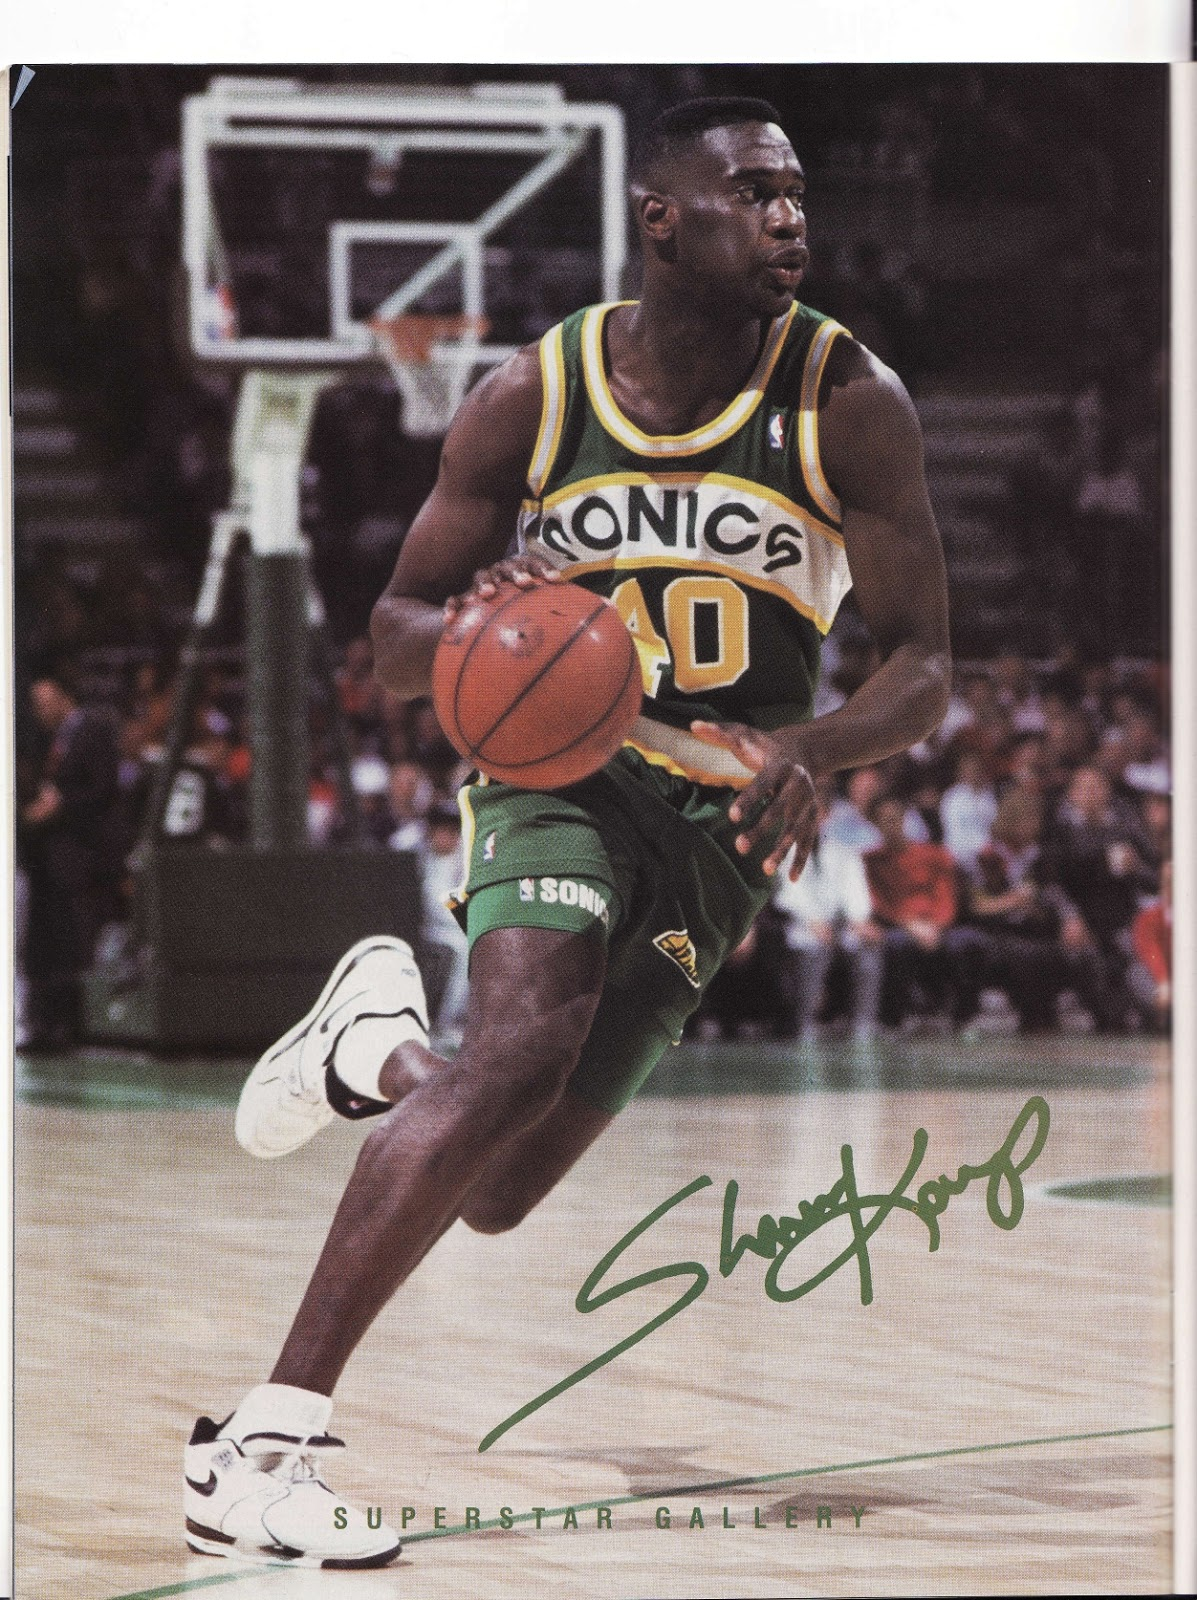 Shawn Kemp from Beckett Basketball Monthly